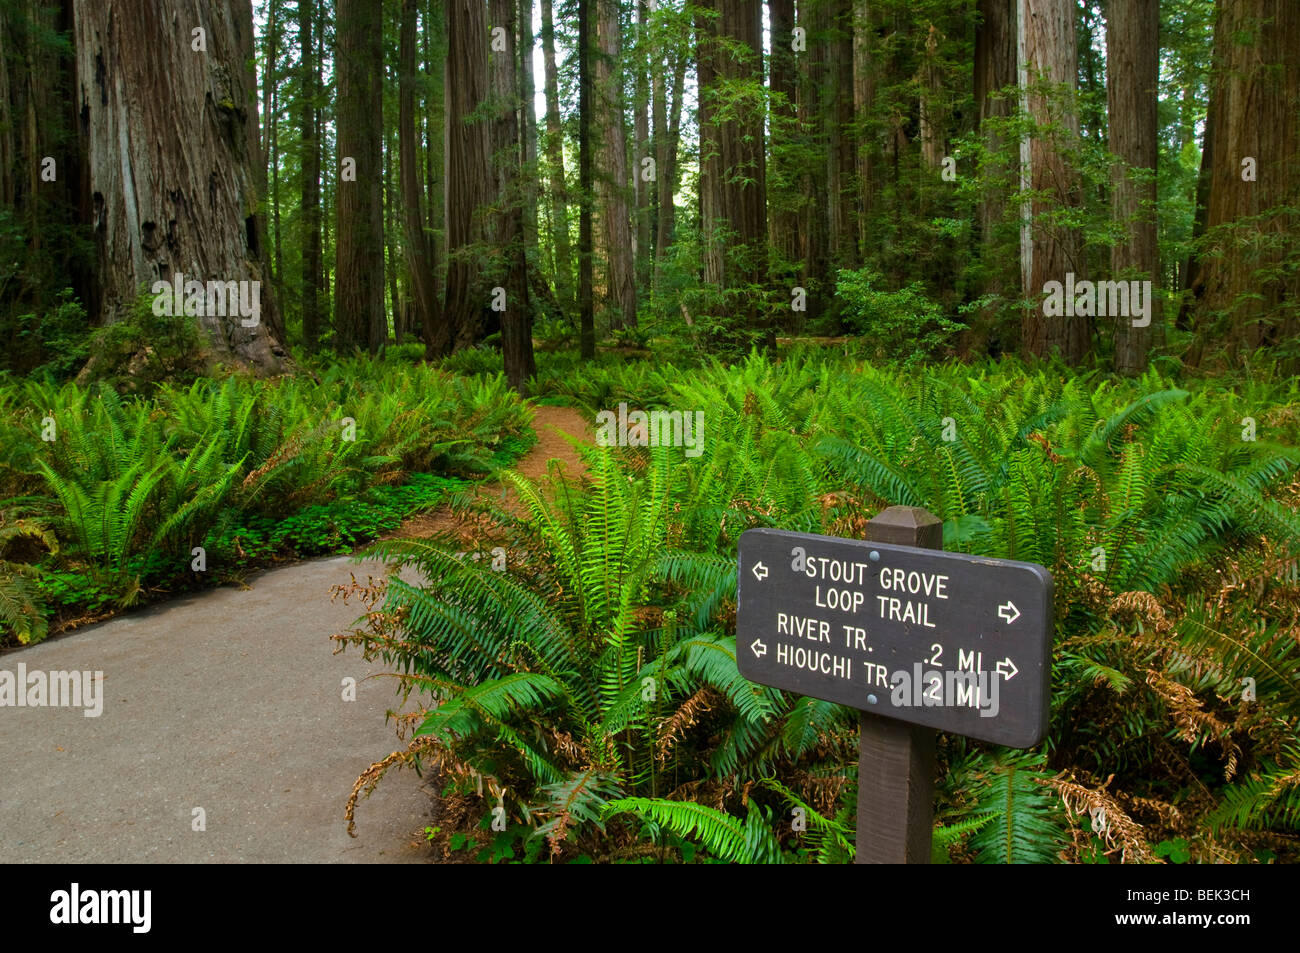 Trail through forest at Stout Grove, Jedediah Smith Redwoods State Park, California - Stock Image